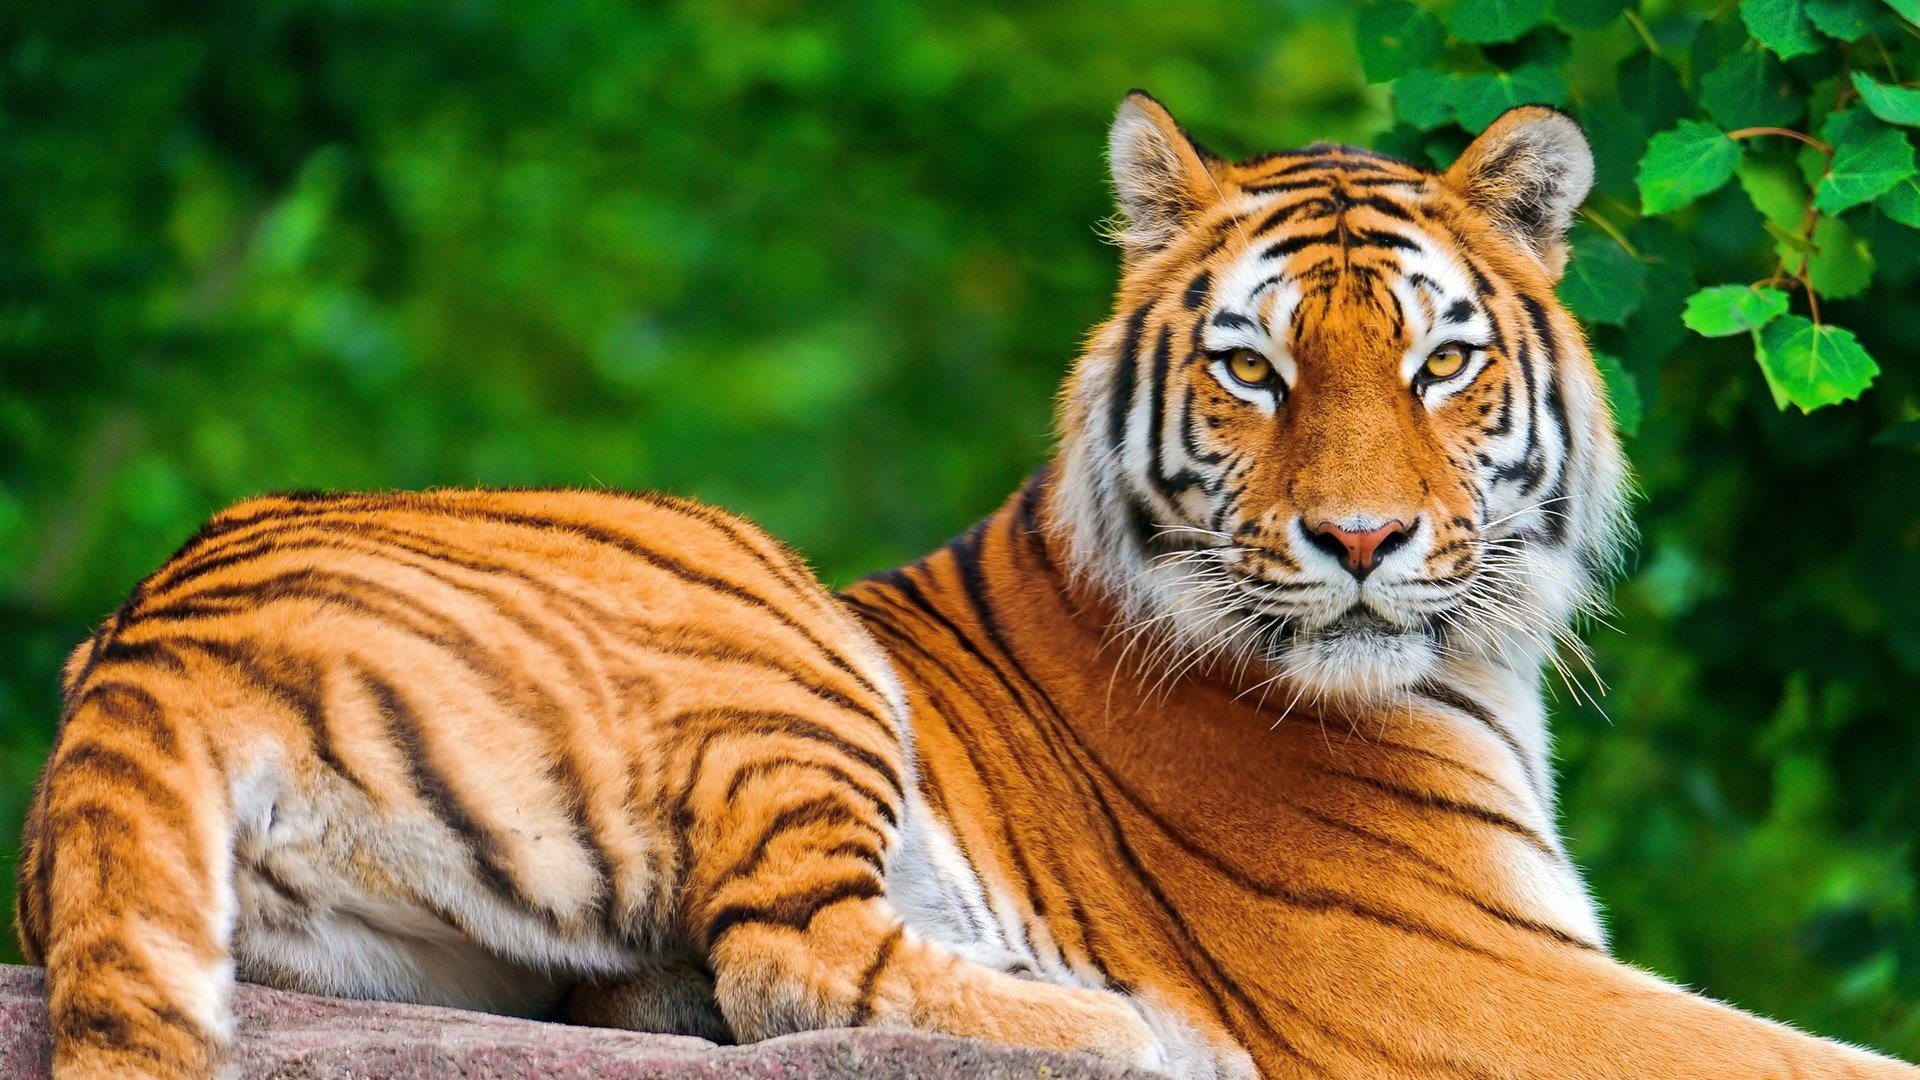 Awesome Tiger free background ID:115658 for hd 1920x1080 desktop